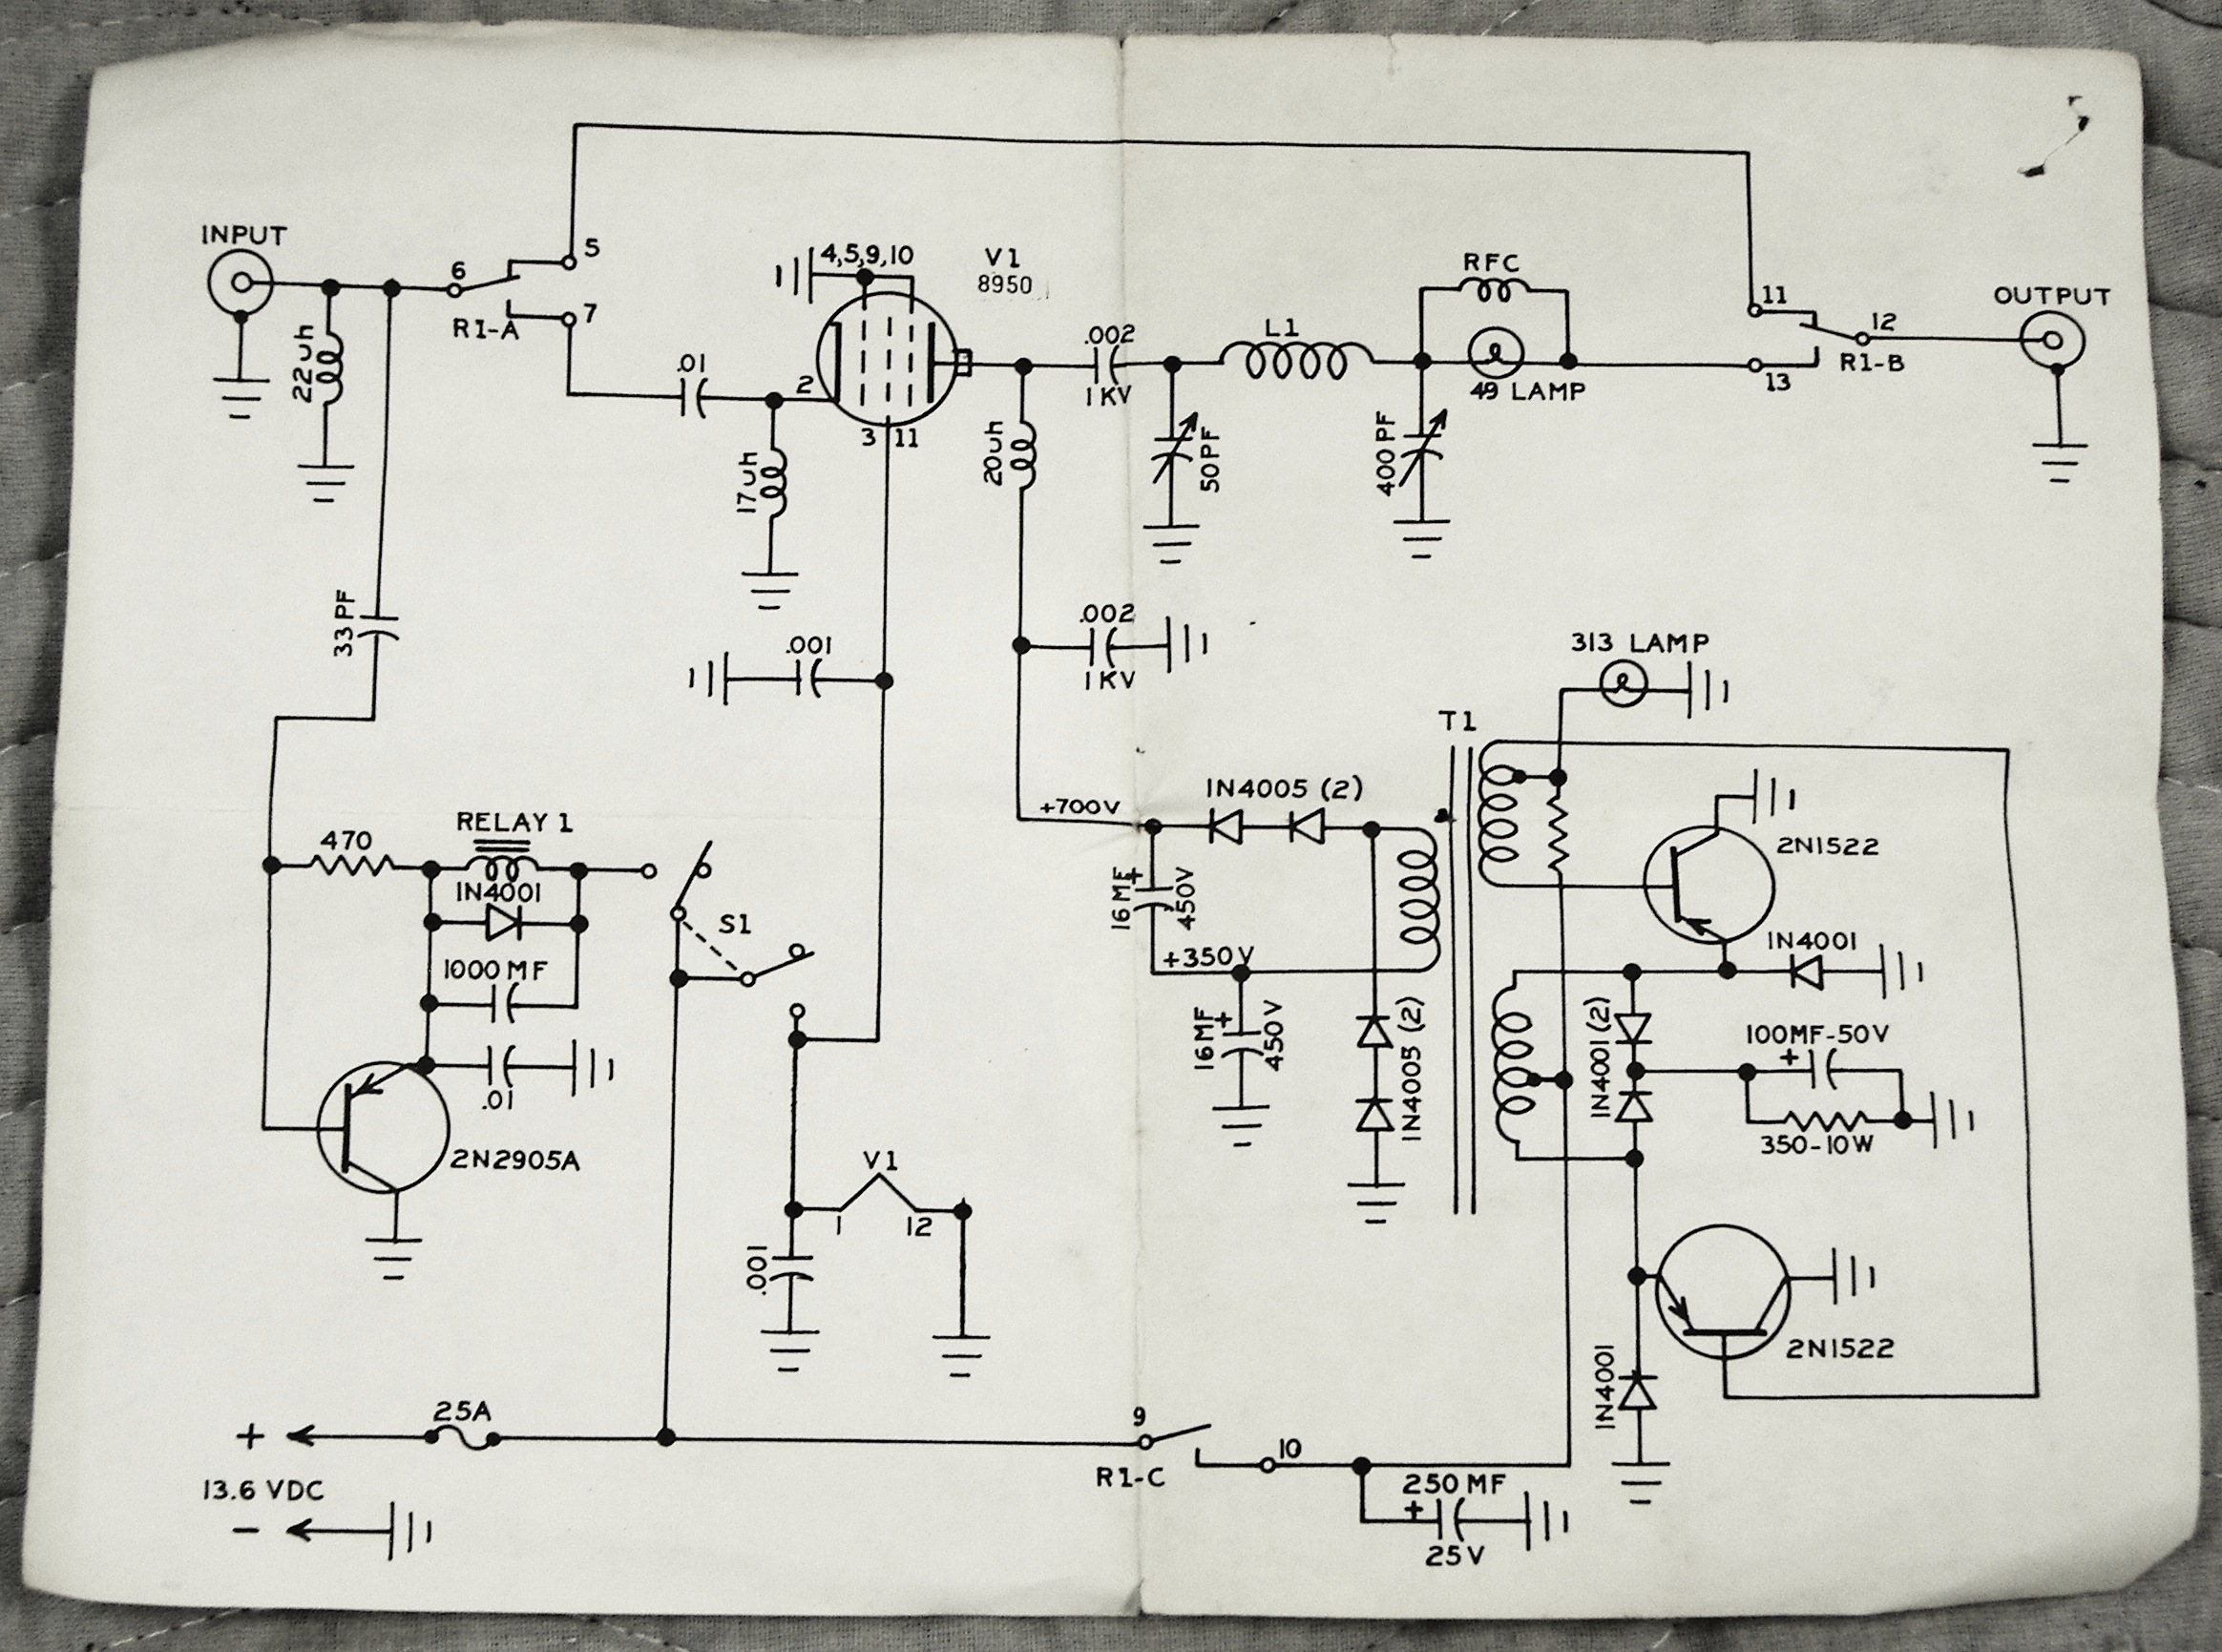 Vacuum Tube Mobile Hf Linear Amplifiers Vintage Guitar Amp Schematics Get Free Image About Wiring Diagram Pulsor Schematic